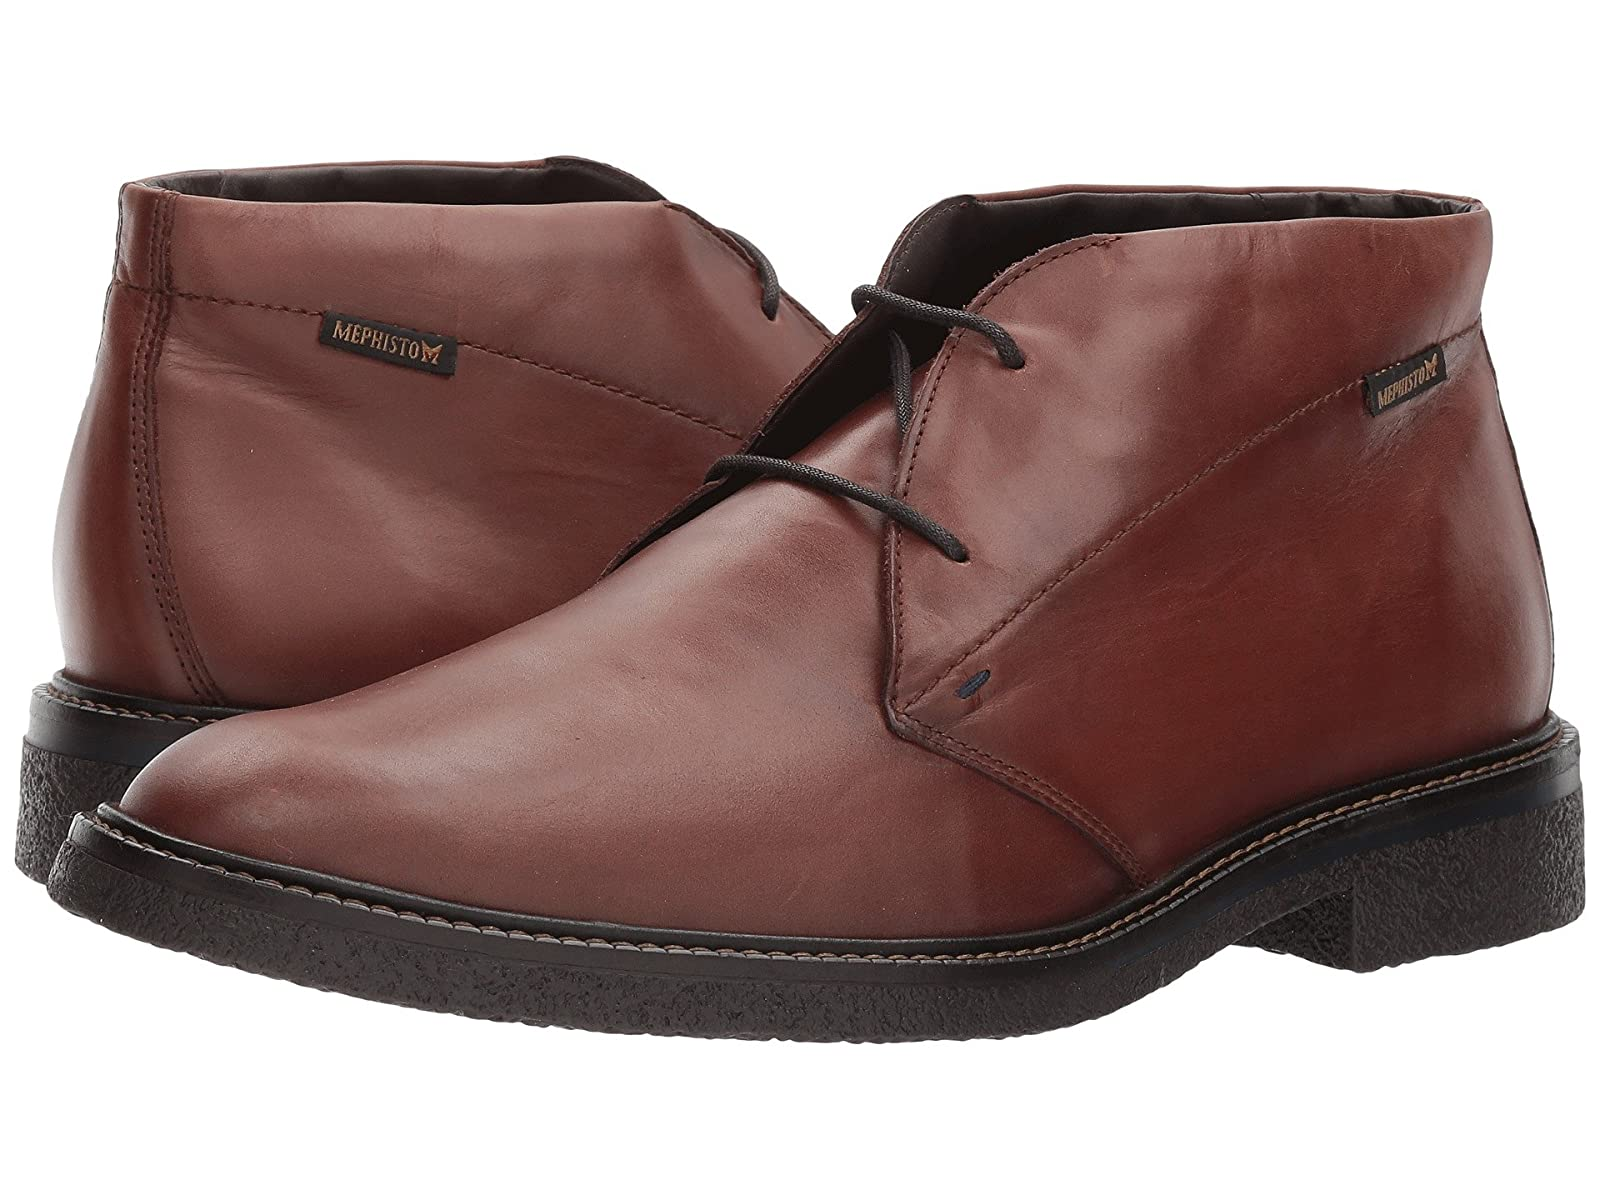 Mephisto GeraldCheap and distinctive eye-catching shoes